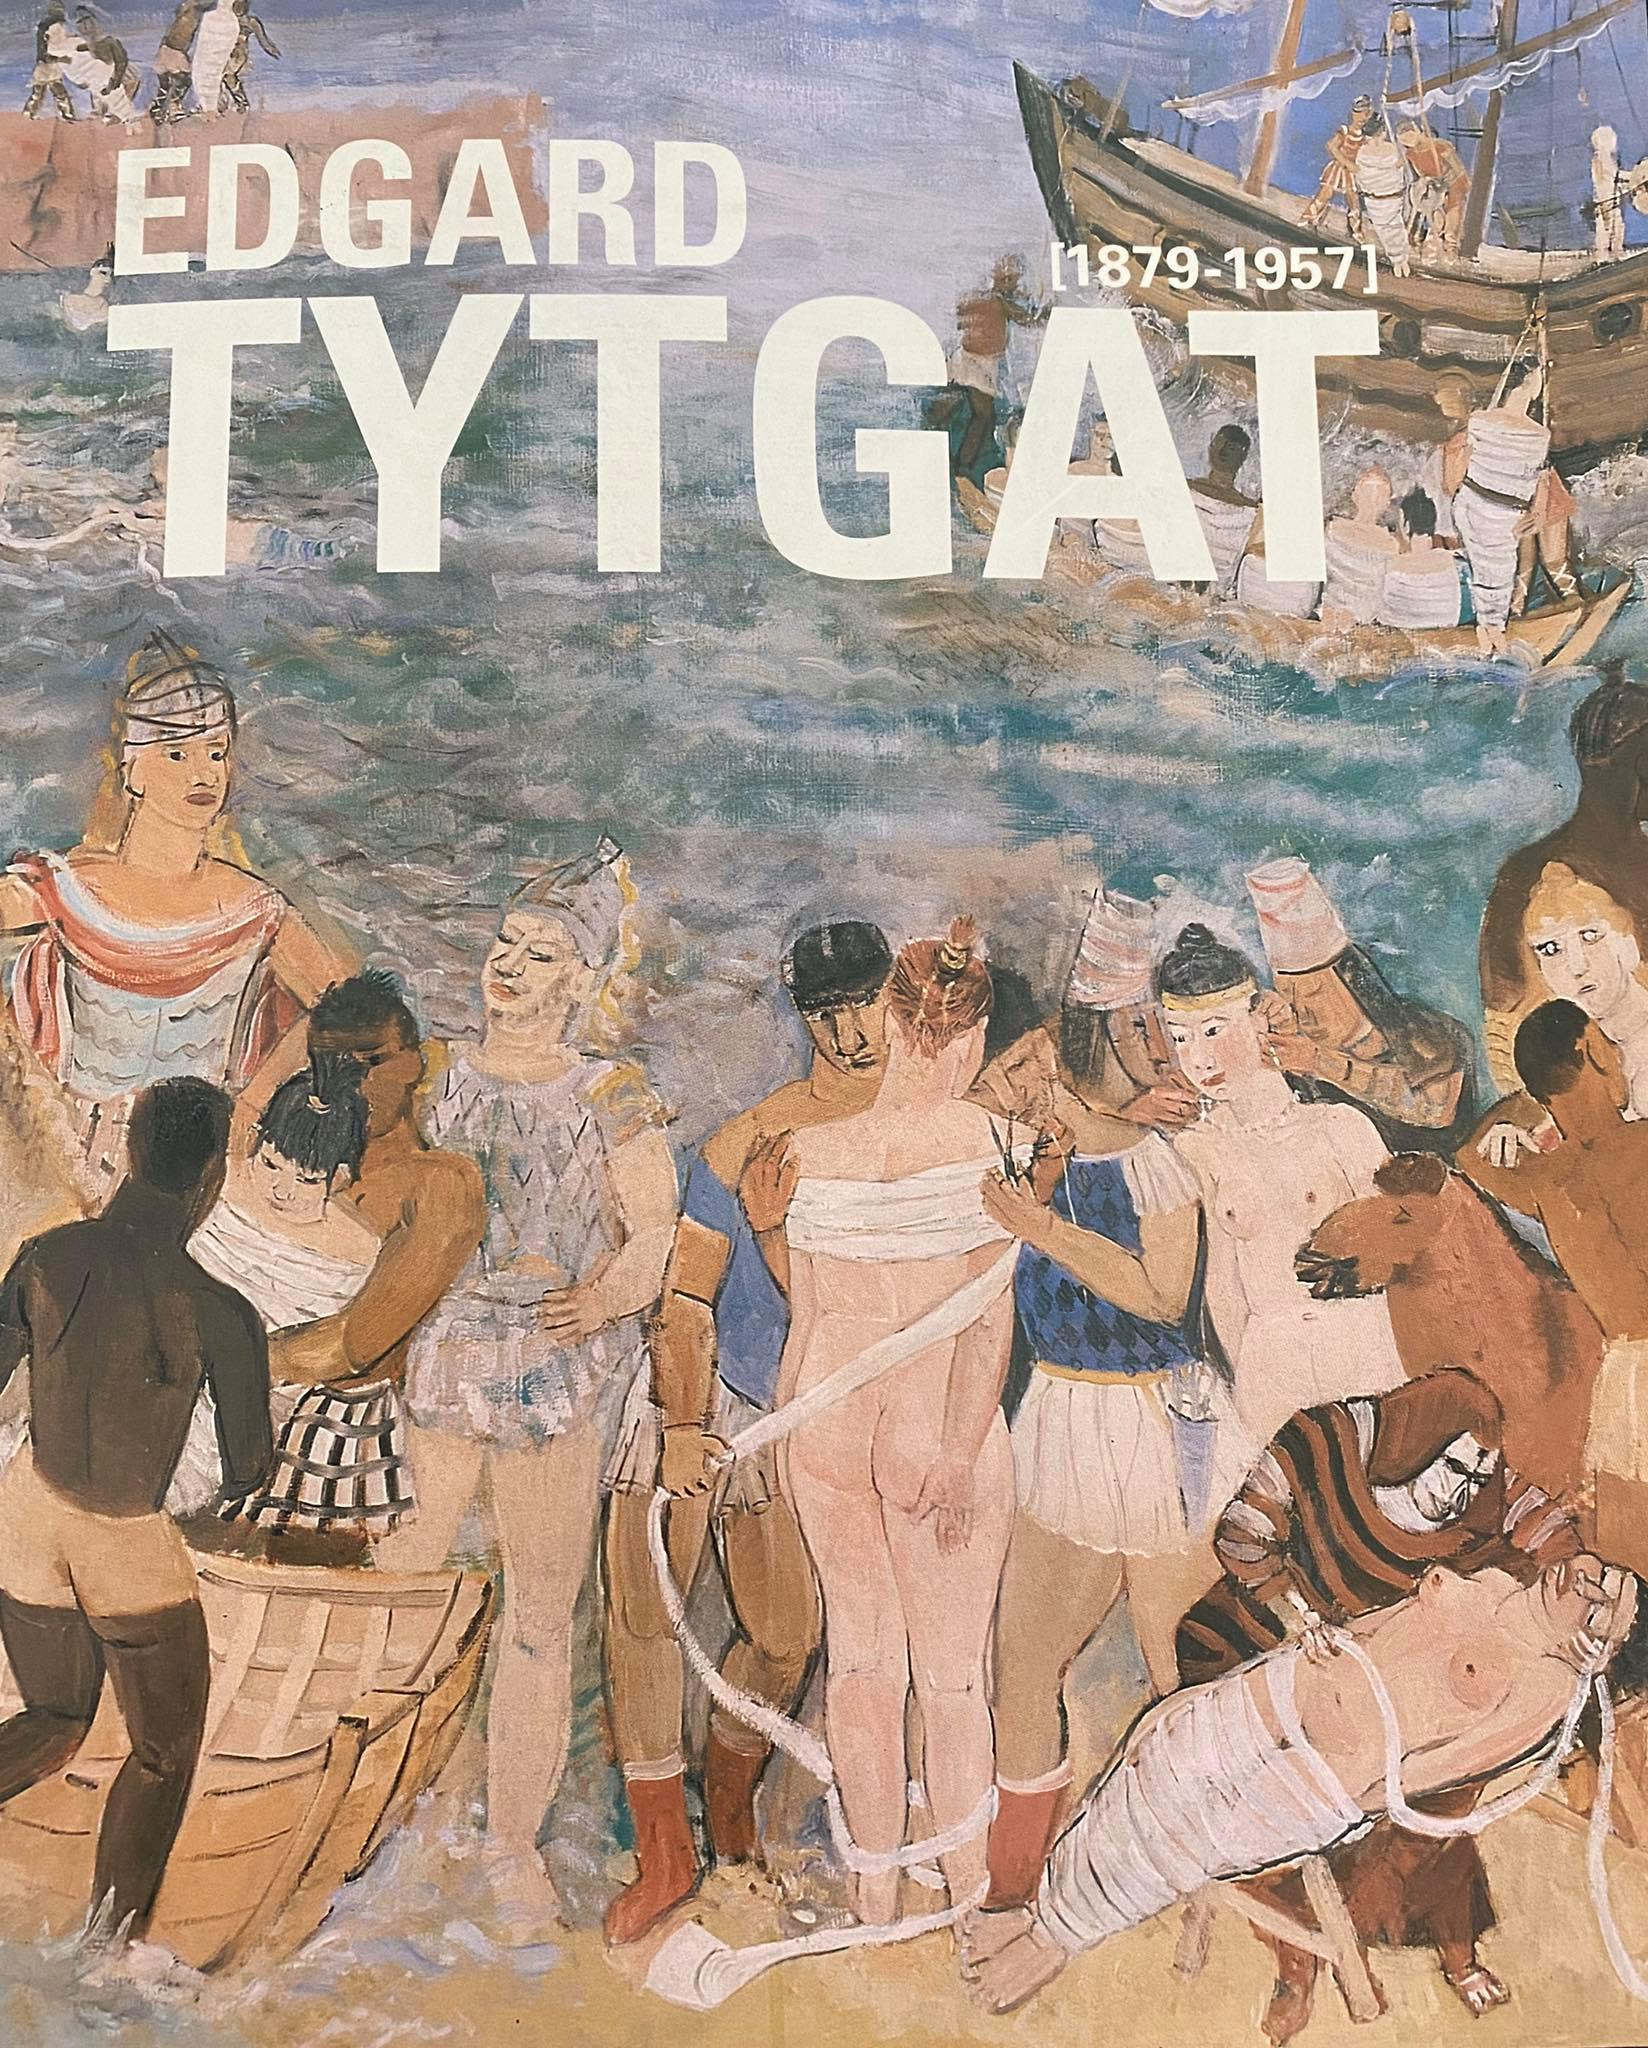 92. Edgard Tytgat - Willy Van Den Bussche